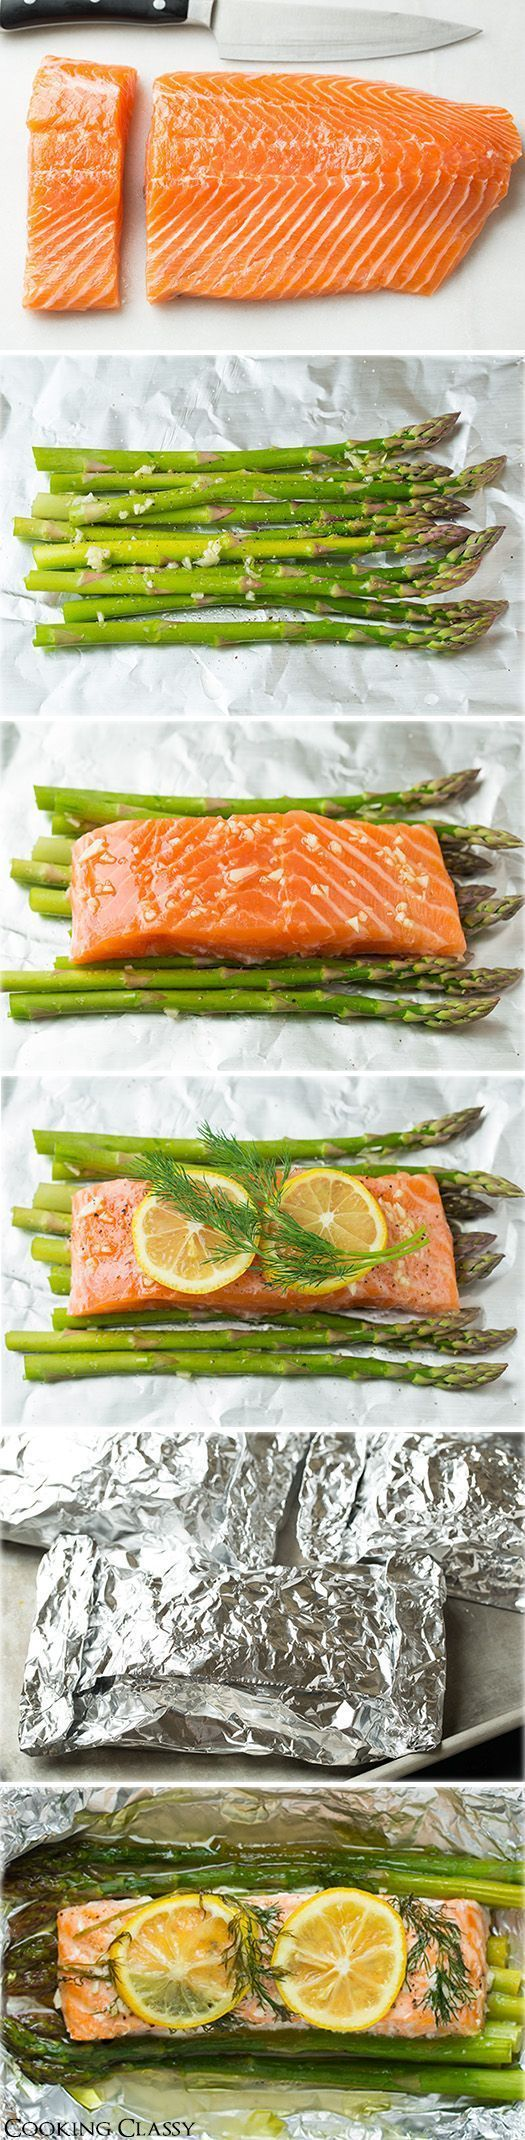 """Salmon Recipes Healthy ♥ Salmon Recipes Easy  Baked Salmon and Asparagus in Foil  """"- this is one of the easiest dinners ever, it tastes amazing, it's perfectly healthy and clean up is a breeze! """"  4 (6 oz) skinless salmon fillets - Wild caught 1 lb asparagus, tough ends trimmed 2 1/2 Tbsp olive oil 2 cloves garlic, minced Salt and freshly ground black pepper 1 lemon thinly sliced Fresh dill sprigs, or chopped fresh thyme, rosemary or pasley"""